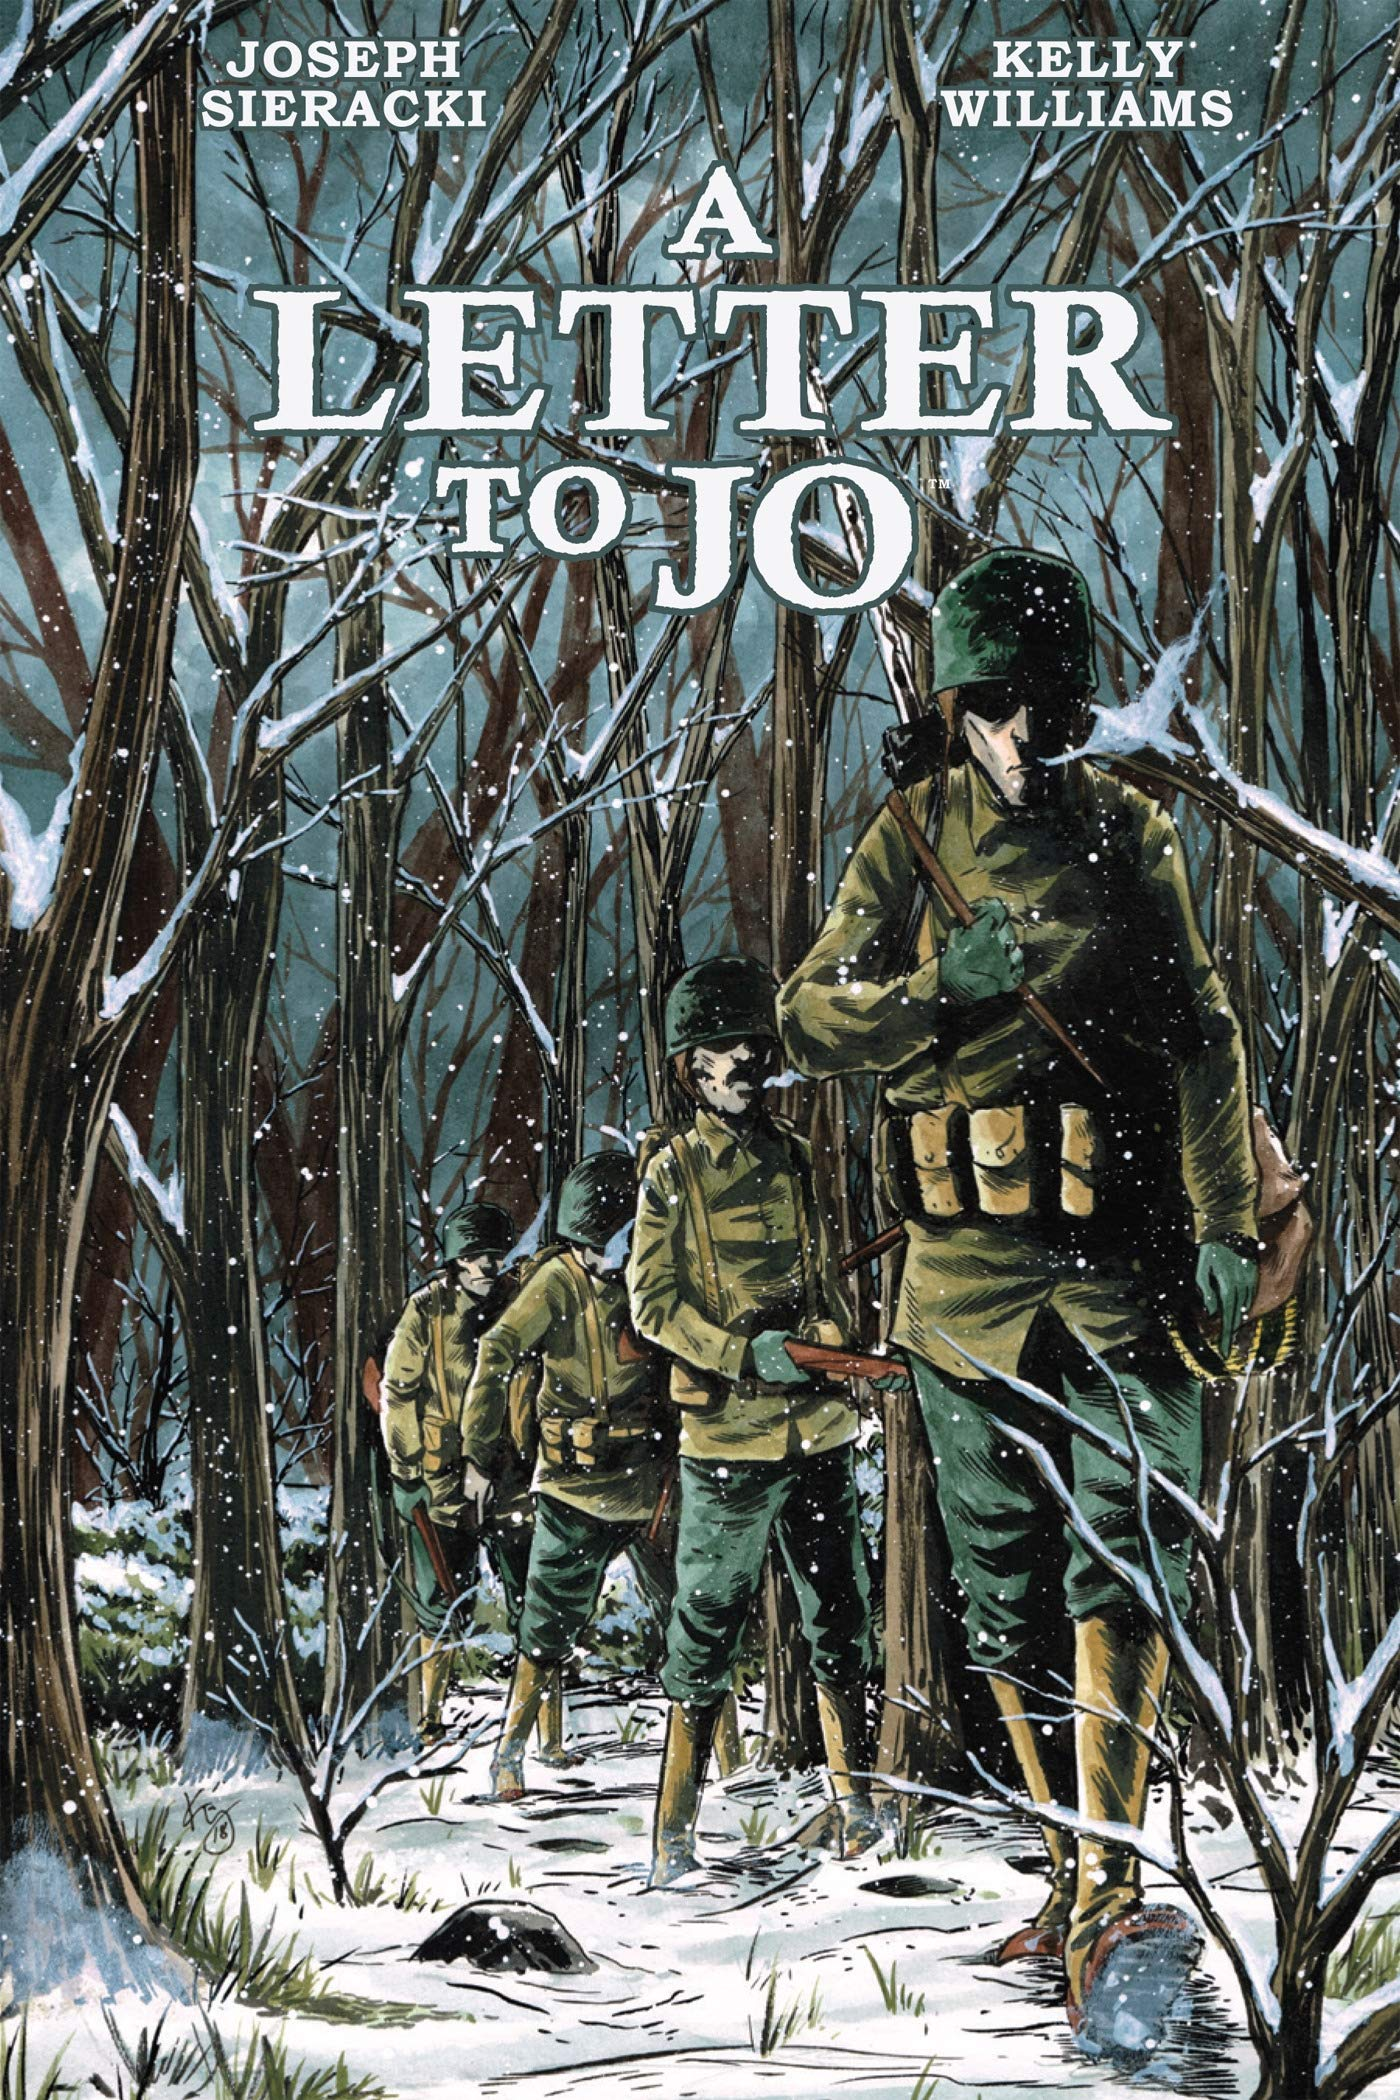 Graphic Novels for Winter 2020: A Letter to Jo